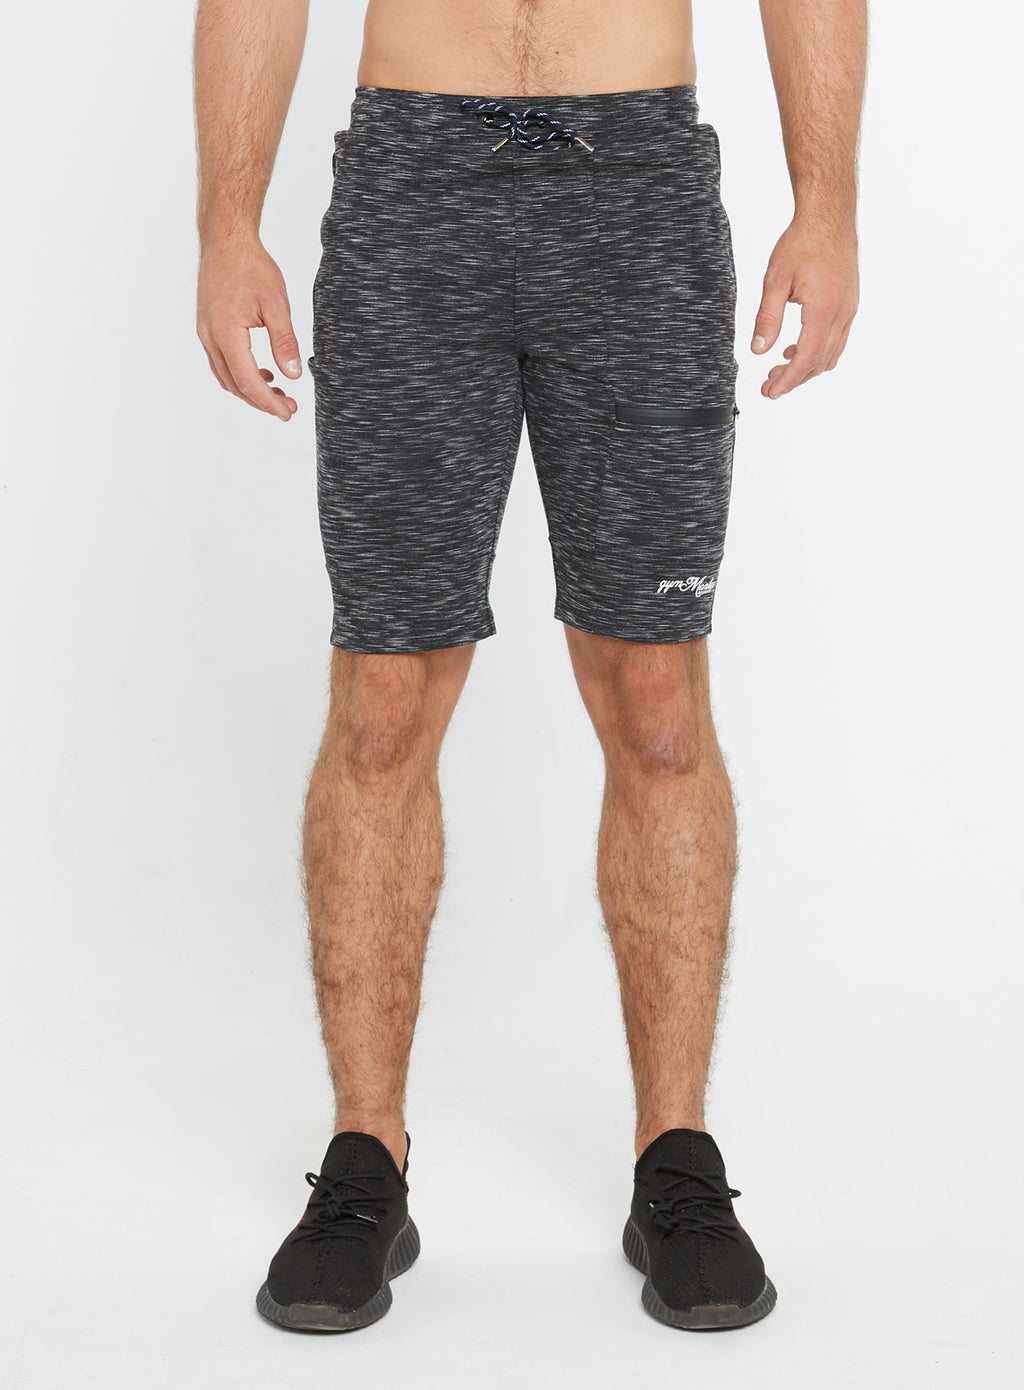 Gym Monkee - Black Striped Shorts FRONT